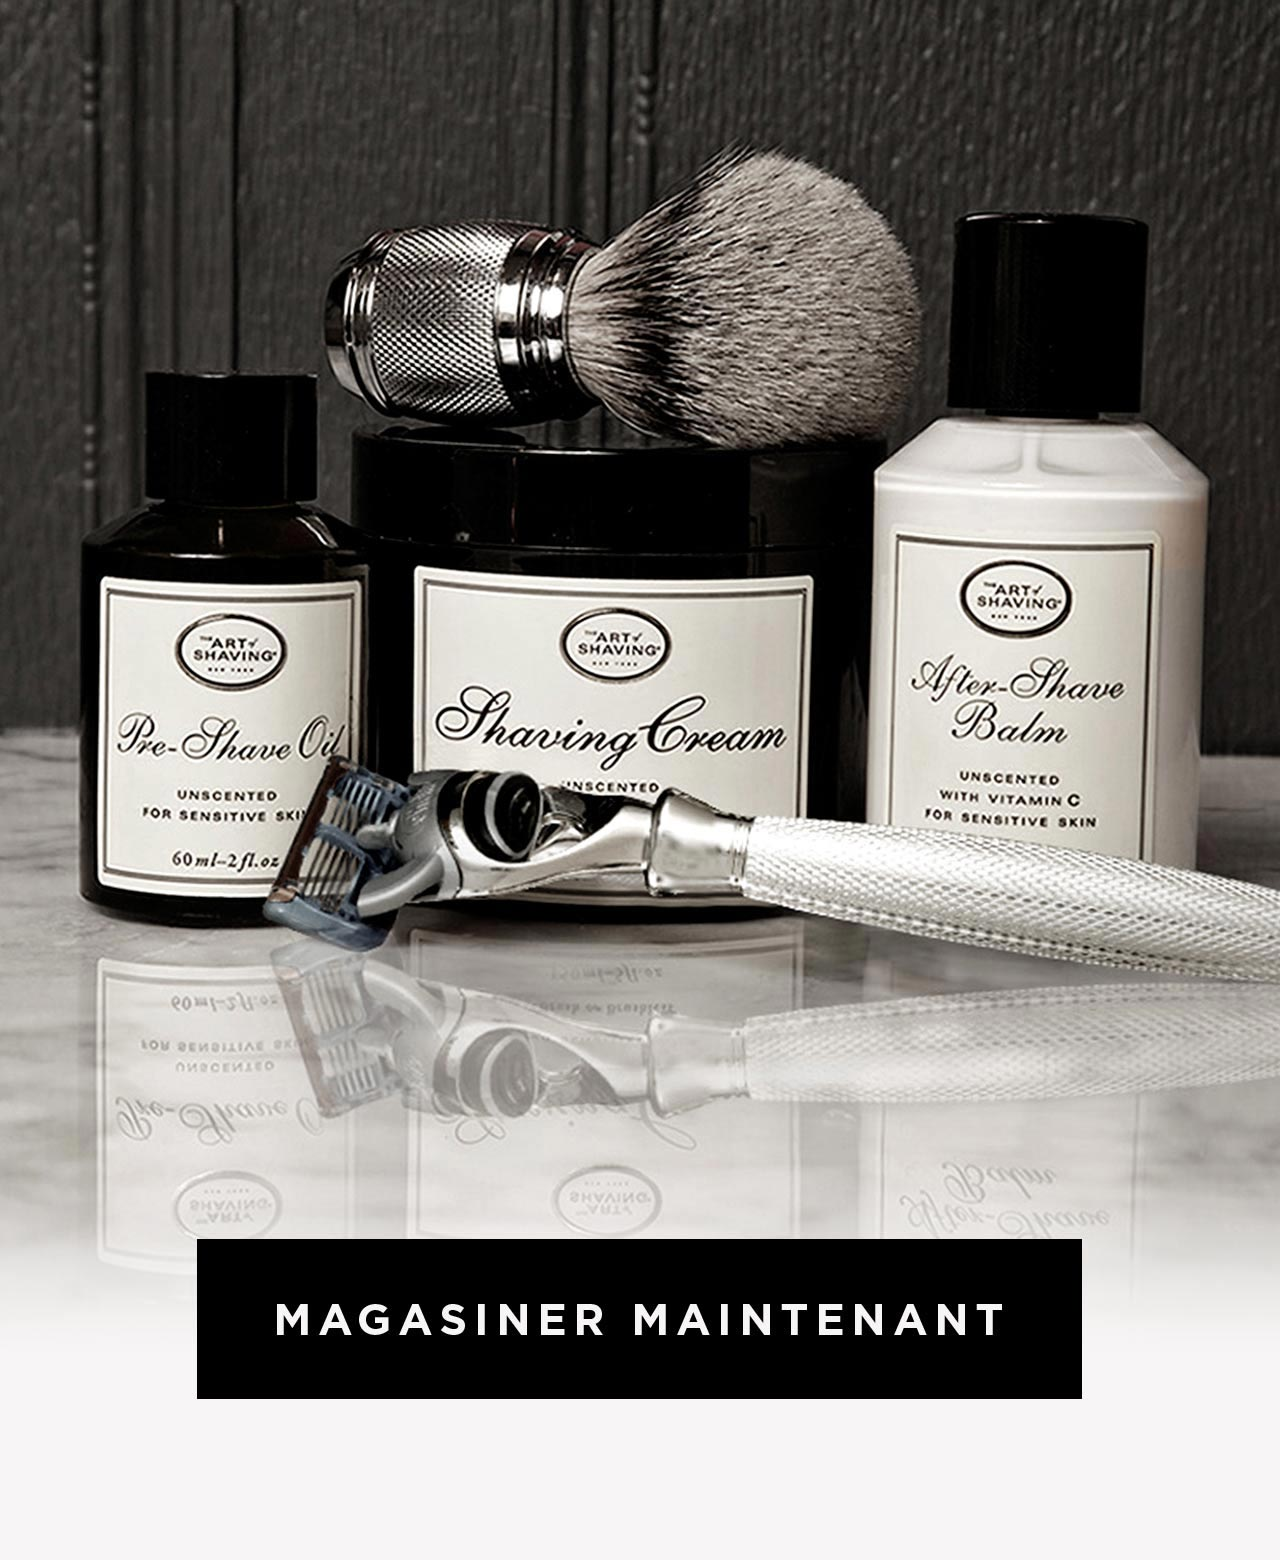 The Art of Shaving - Magasiner Maintenant